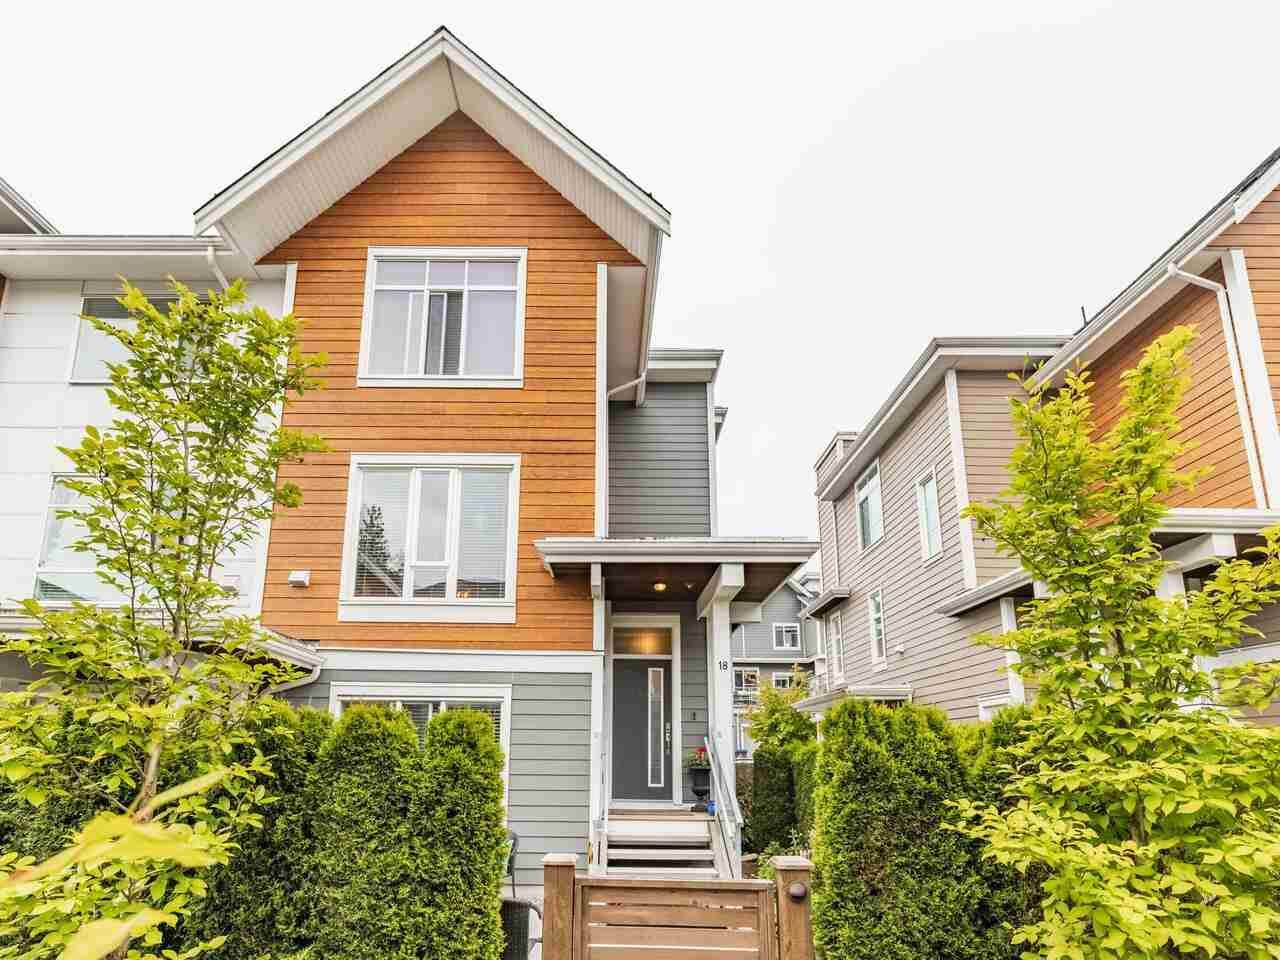 """Main Photo: 18 2978 159 Street in Surrey: Grandview Surrey Townhouse for sale in """"WILLSBROOK"""" (South Surrey White Rock)  : MLS®# R2589759"""